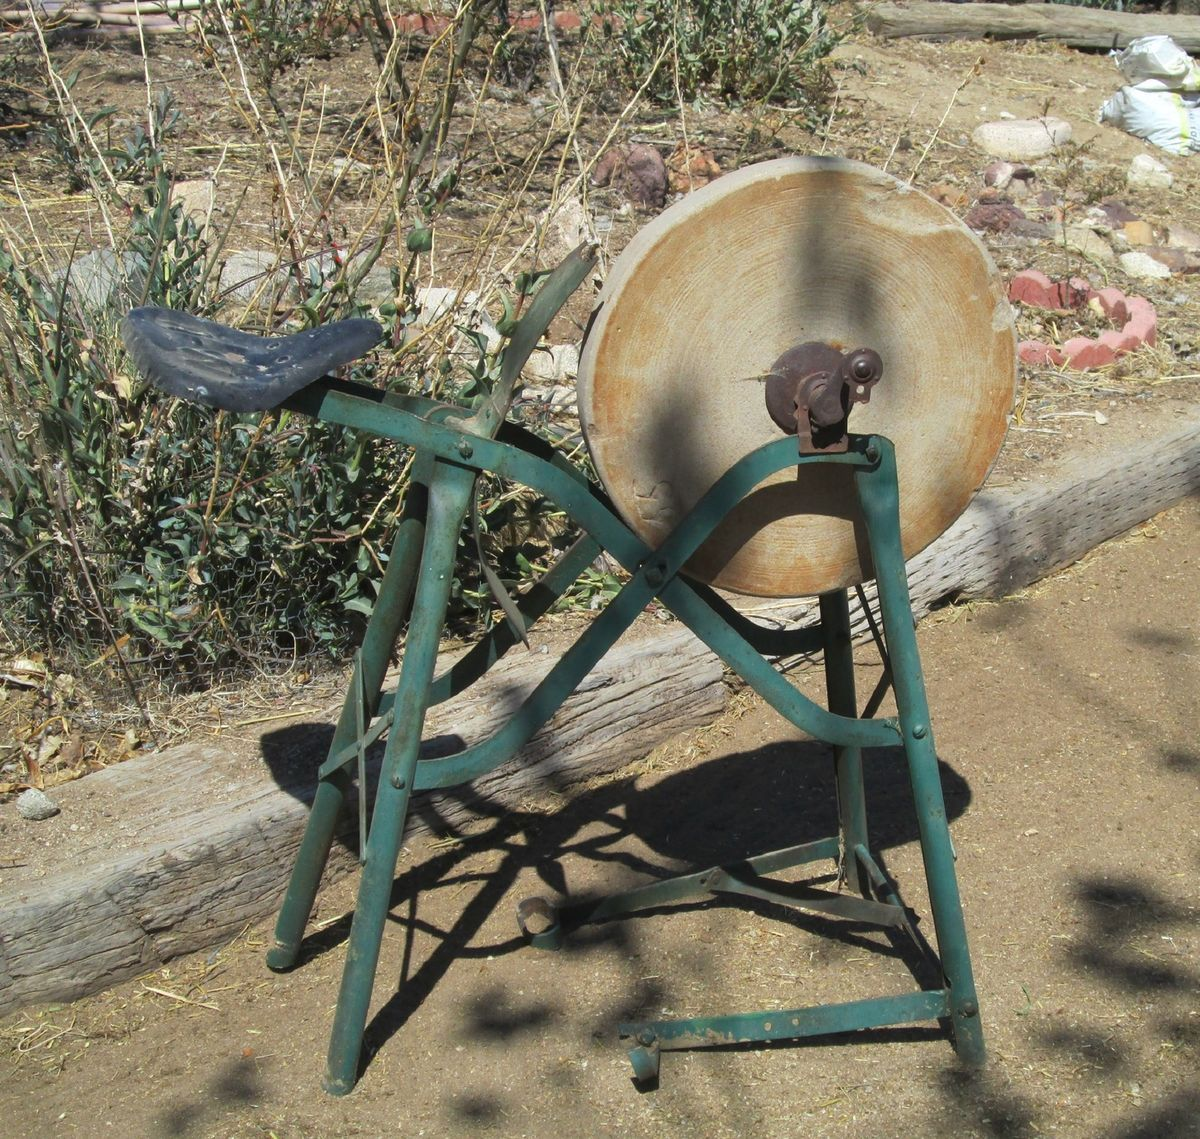 Antique R W Riding Pedal Grinding Wheel Sharpening Stone